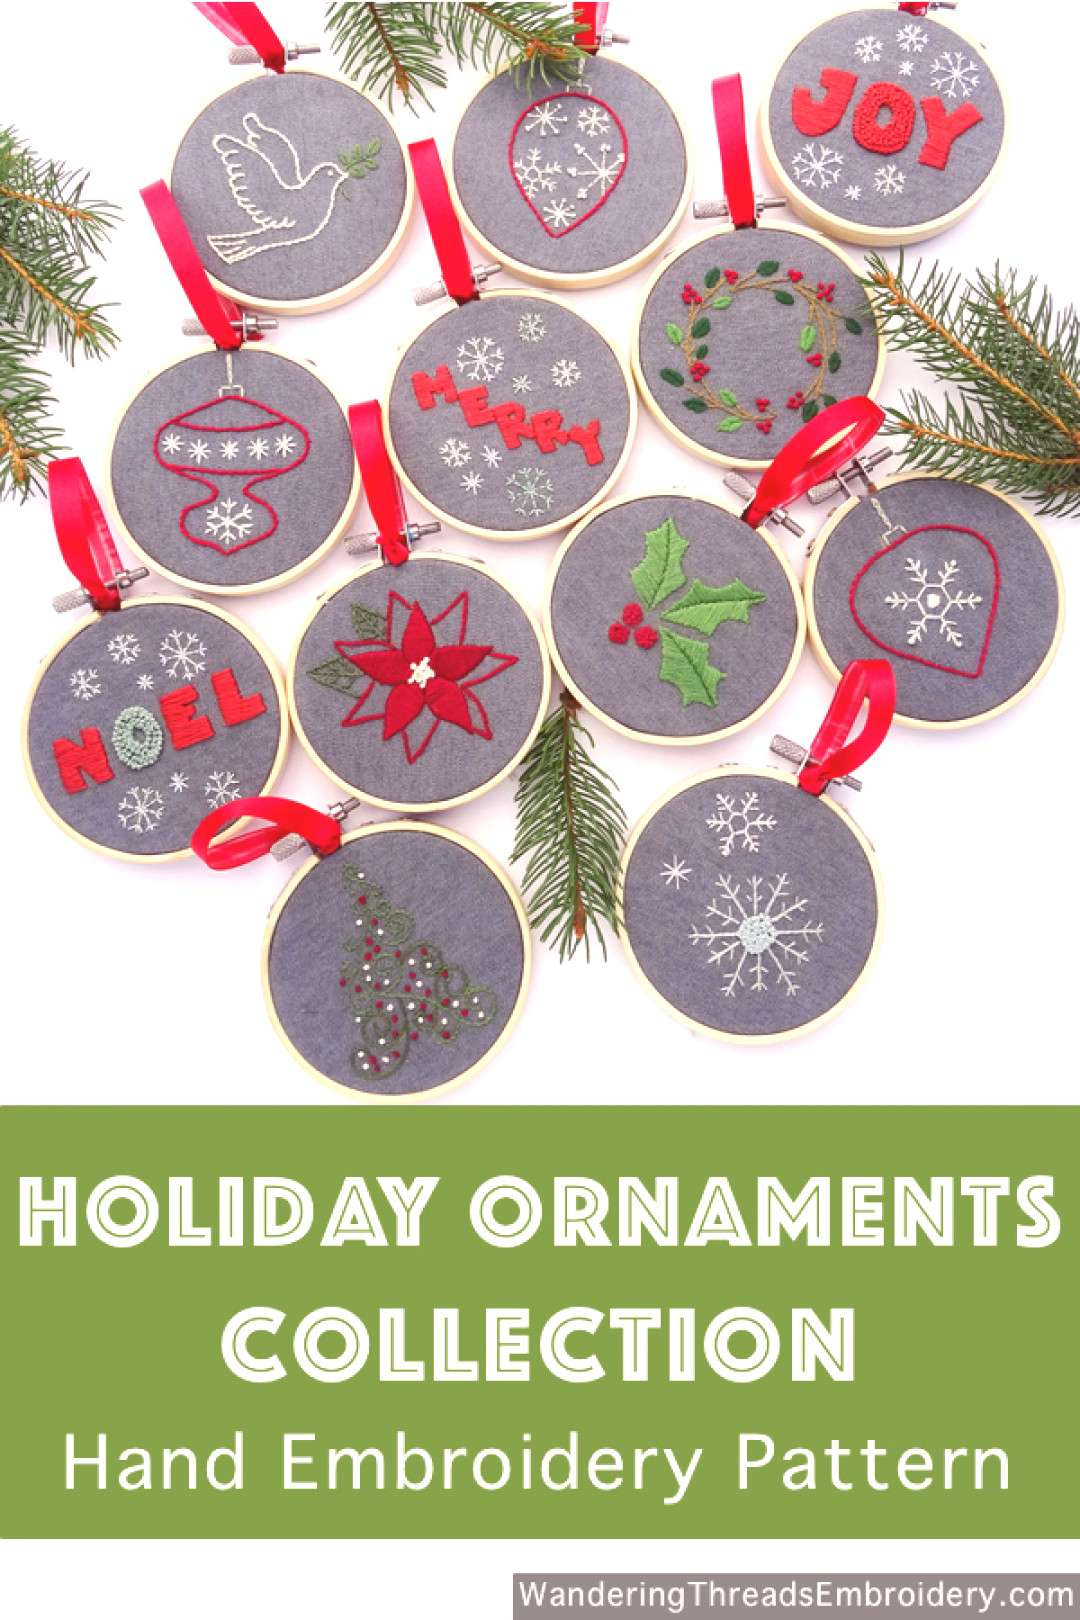 Christmas Ornament Collection Hand Embroidery Pattern - Wandering Threads Embroidery